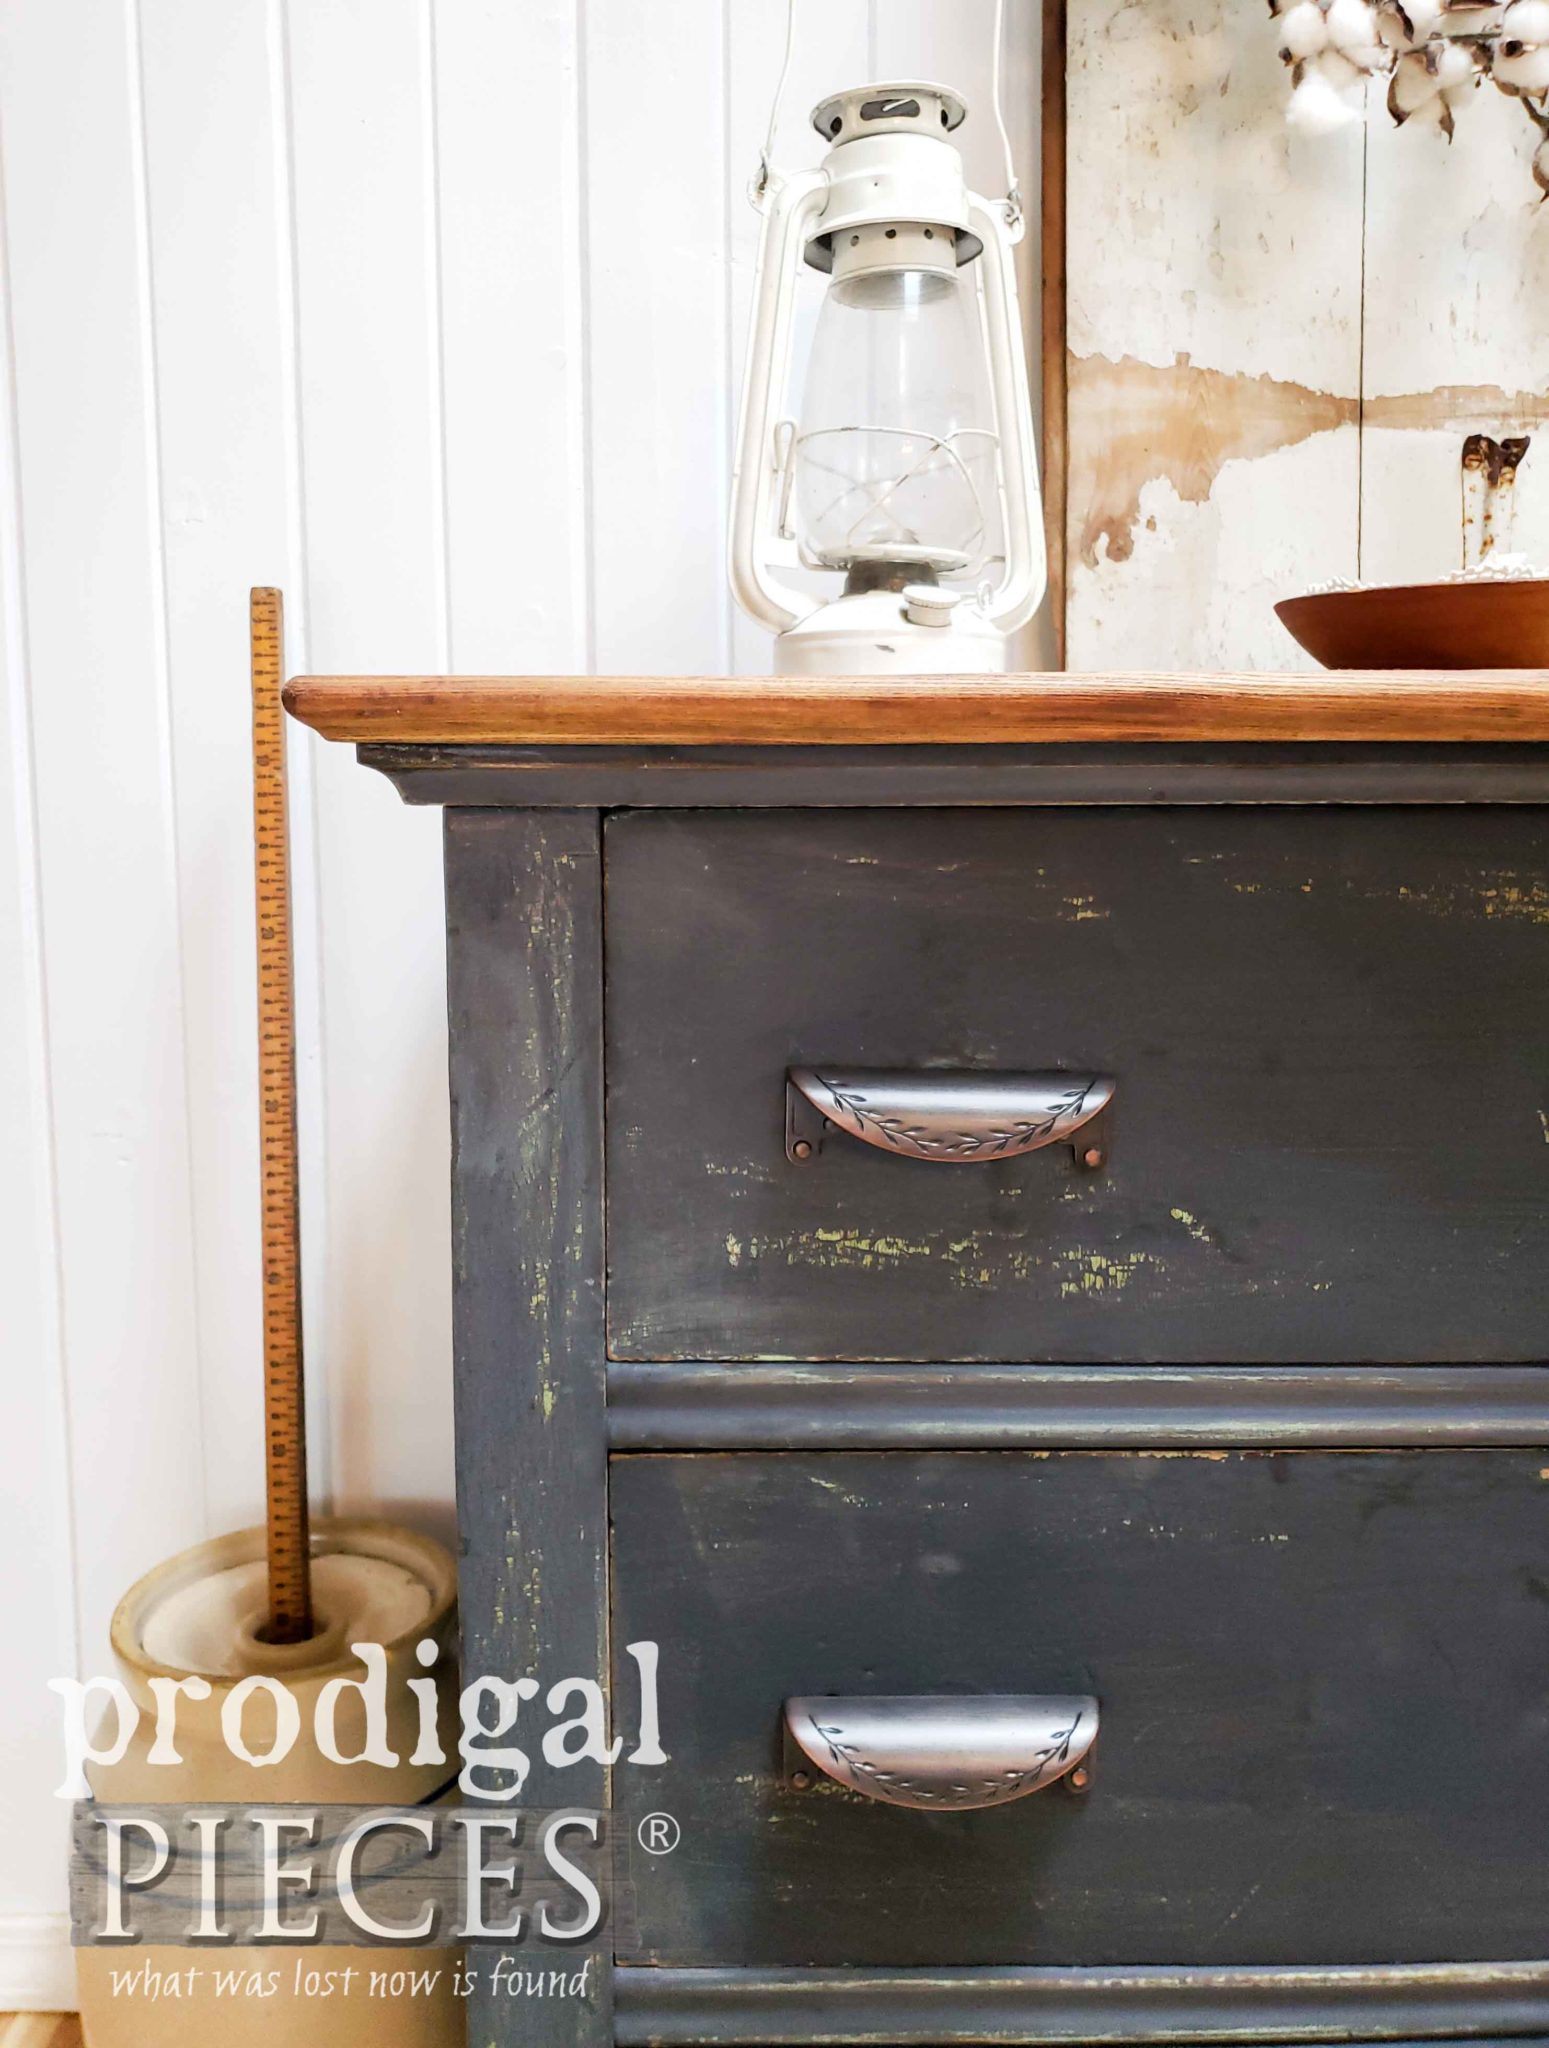 Navy Blue Farmhouse Chest of Drawers Refinished by Larissa of Prodigal Pieces | prodigalpieces.com #prodigalpieces #home #farmhouse #homedecor #furniture #milkpaint